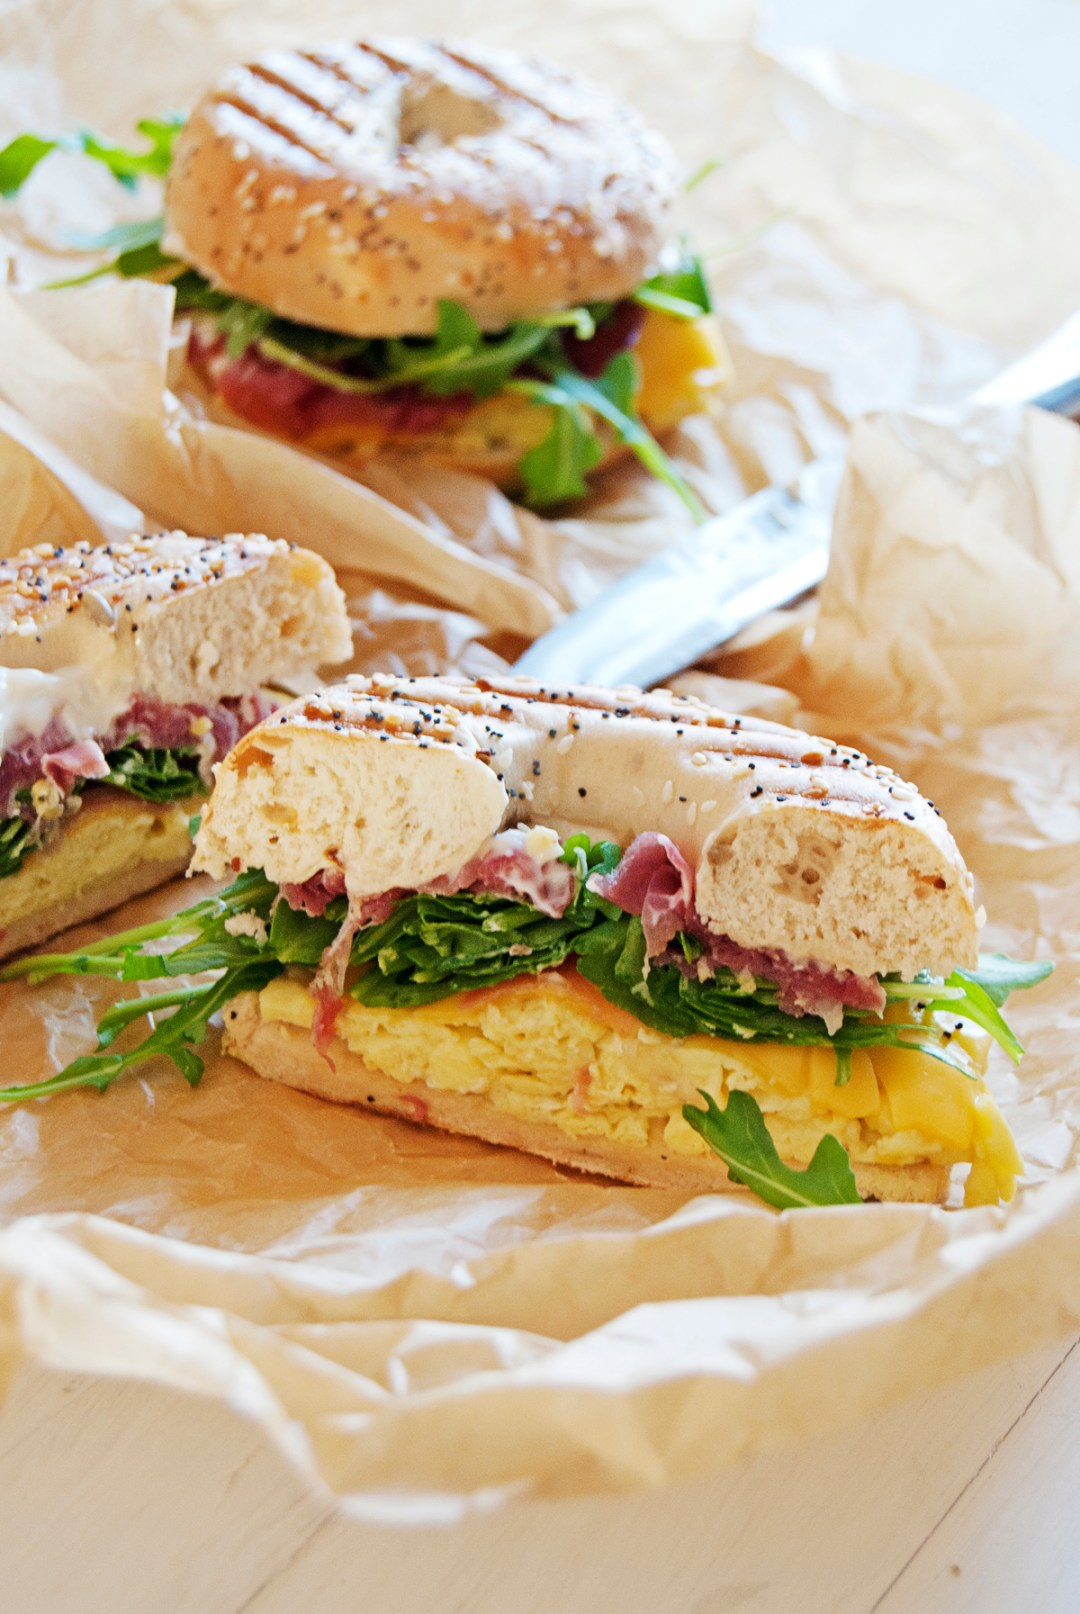 These breakfast bagel paninis are the perfect tasty brunch, featuring scrambled eggs, American cheese, arugula, prosciutto, and mayo.